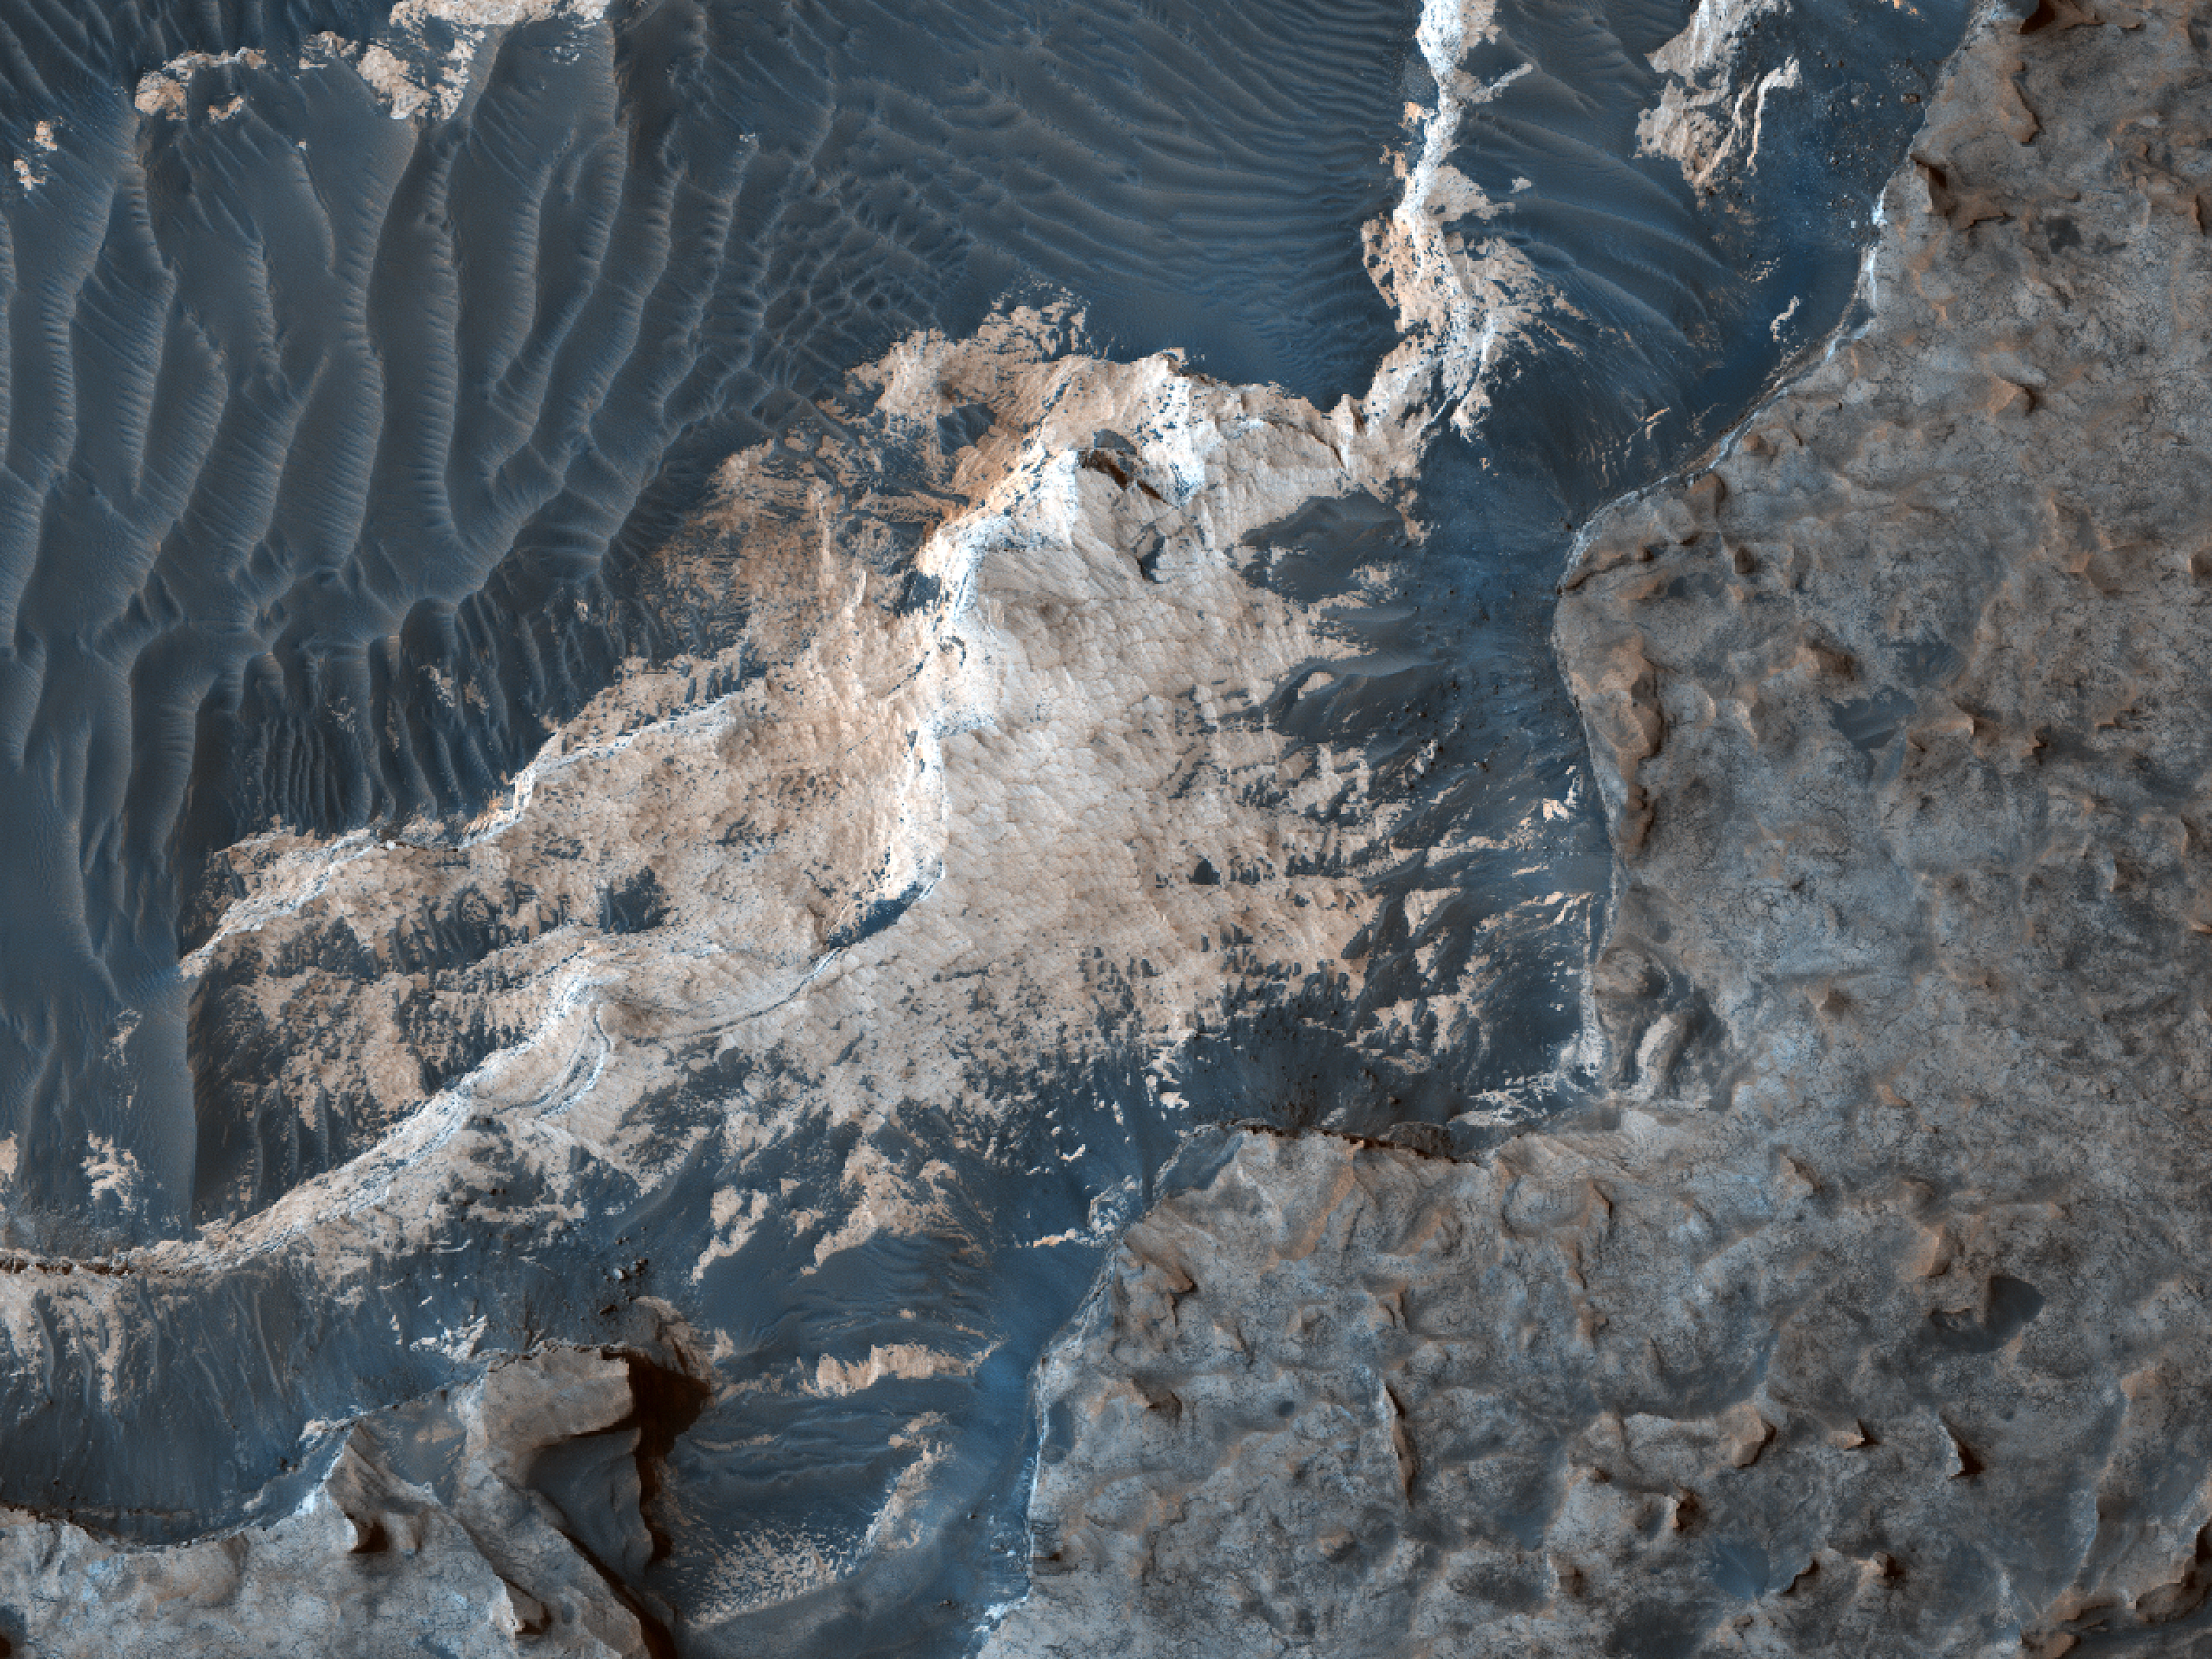 Slope Monitoring in Etched Terrain